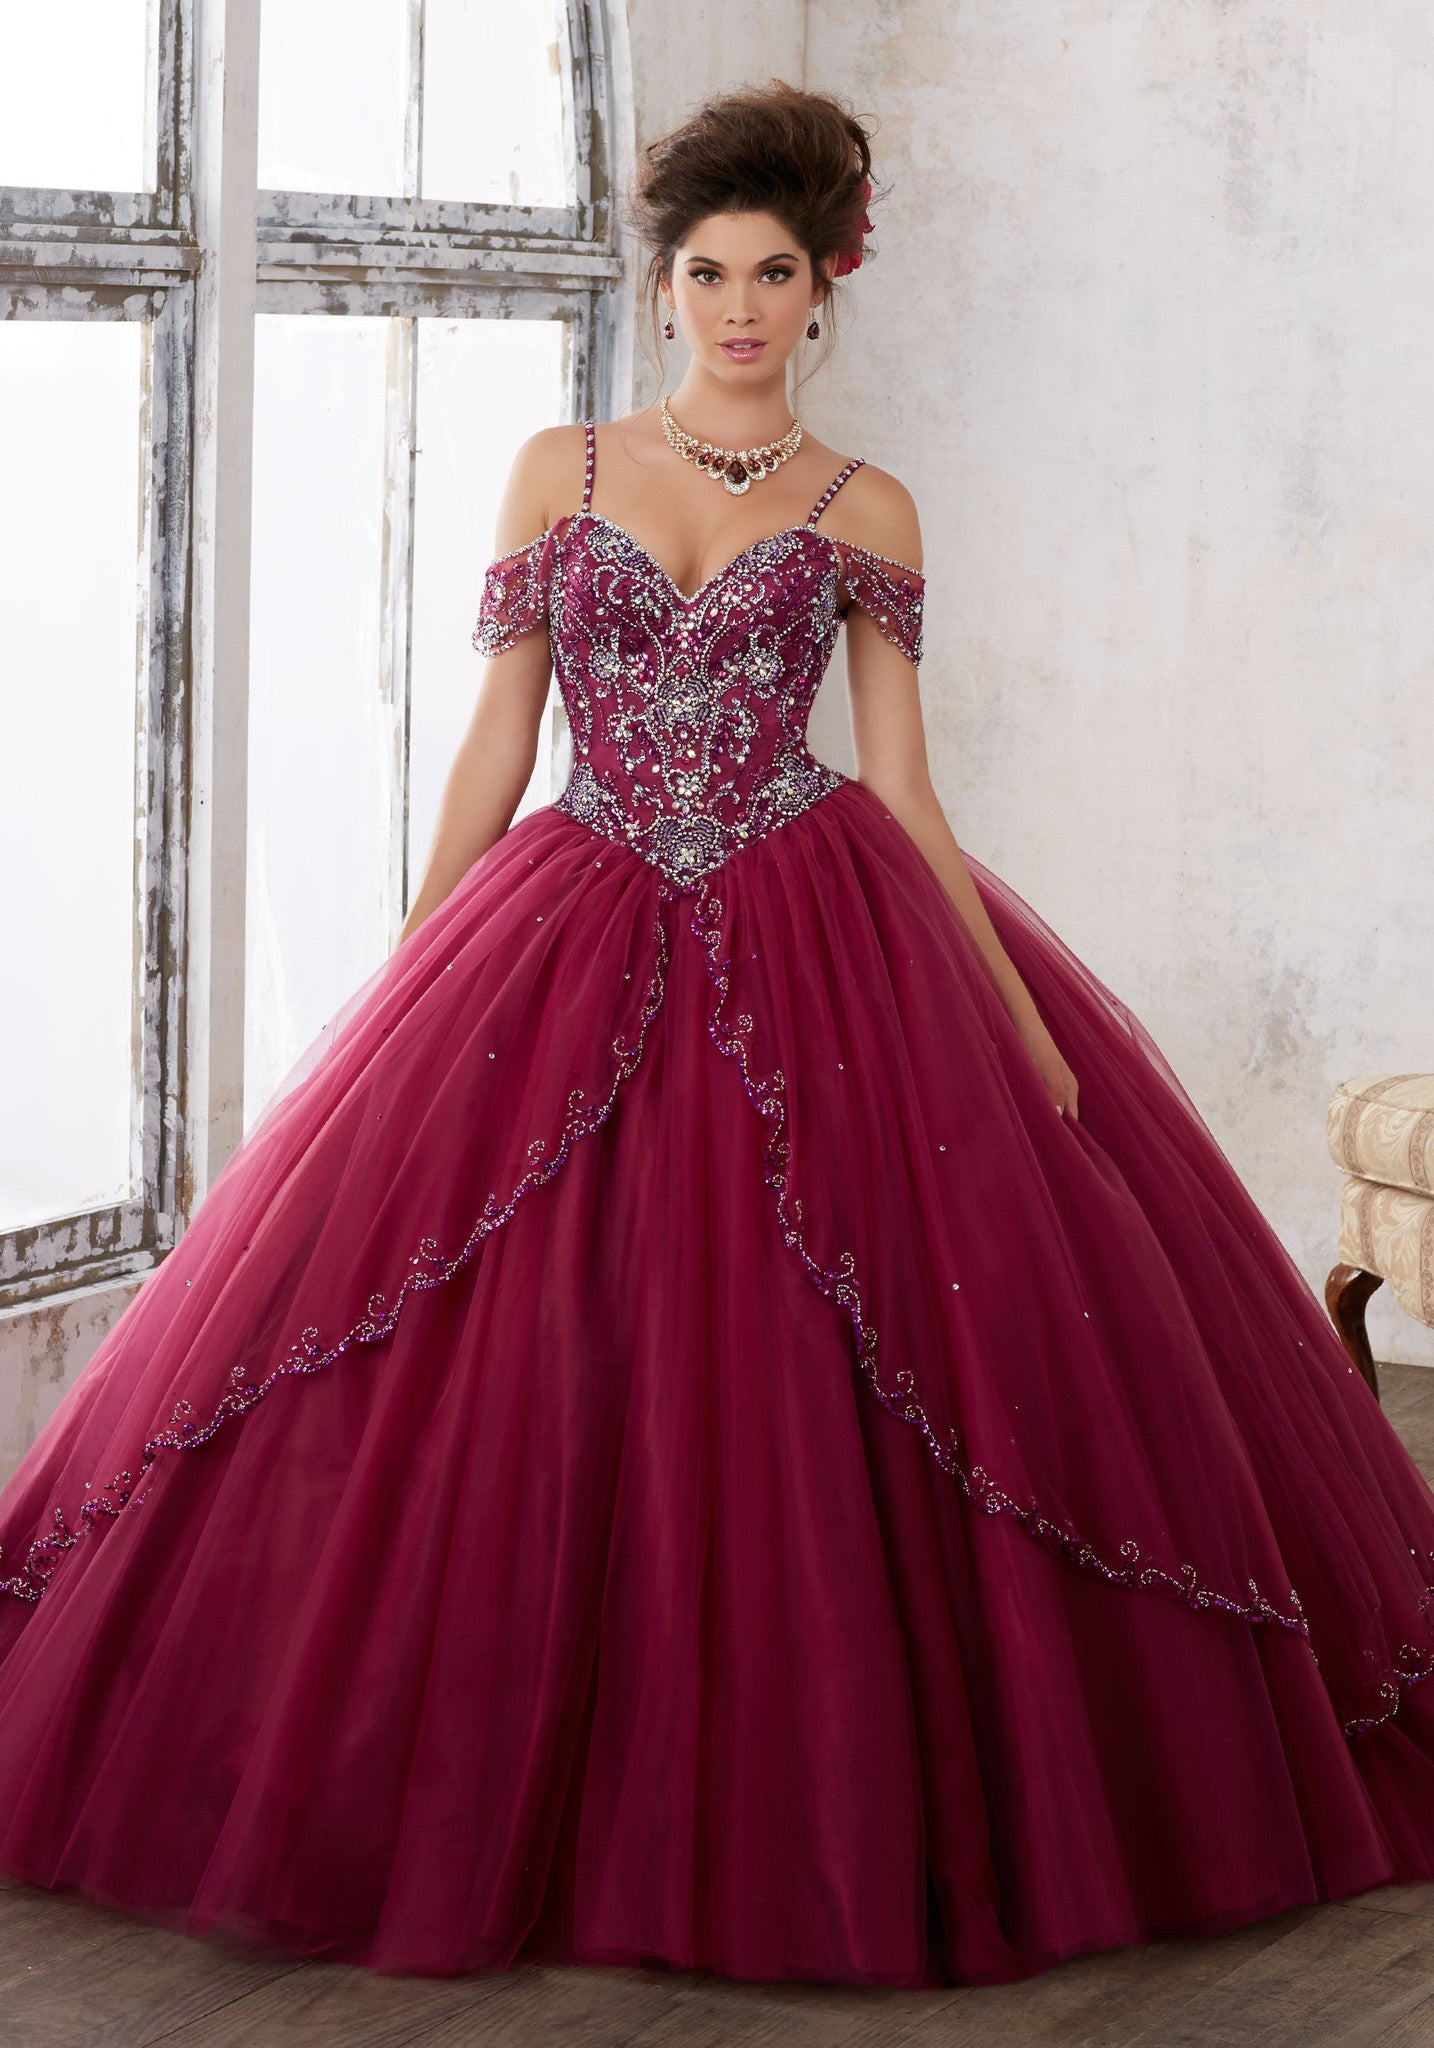 811cb105ad4 Quinceanera Dress Stores In New Jersey - Gomes Weine AG